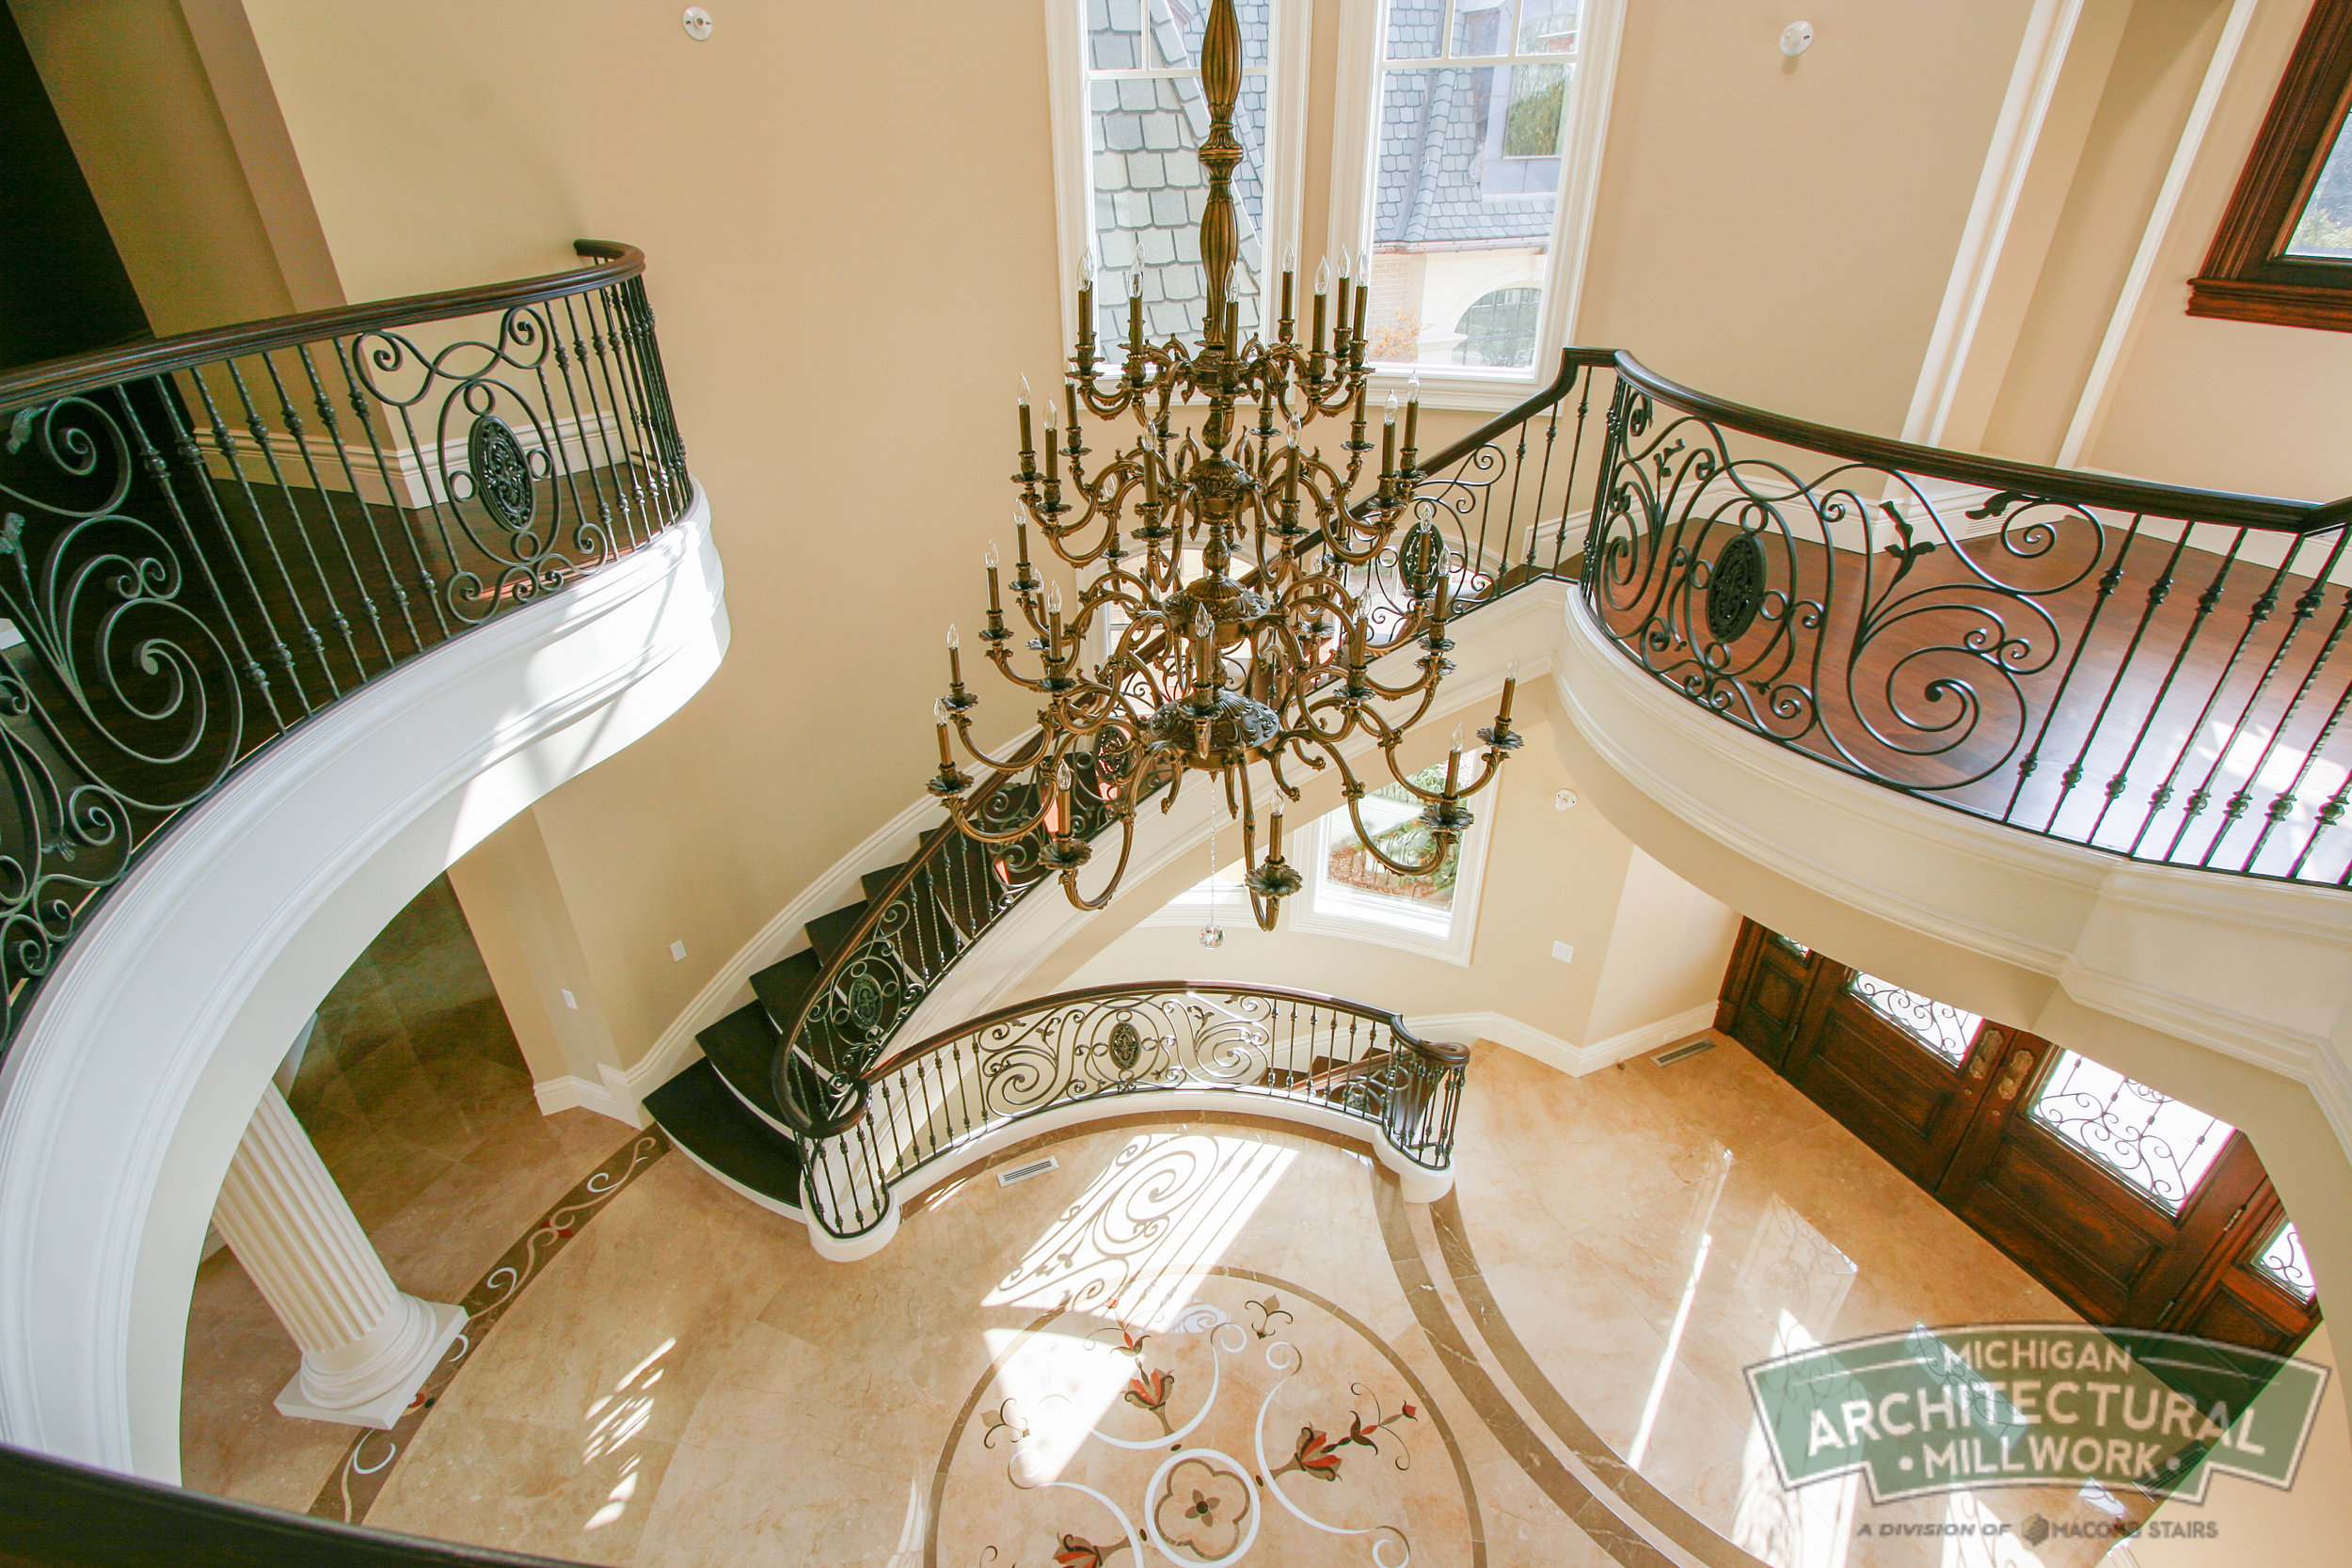 Michigan Architectural Millwork- Moulding and Millwork Photo-216.jpg